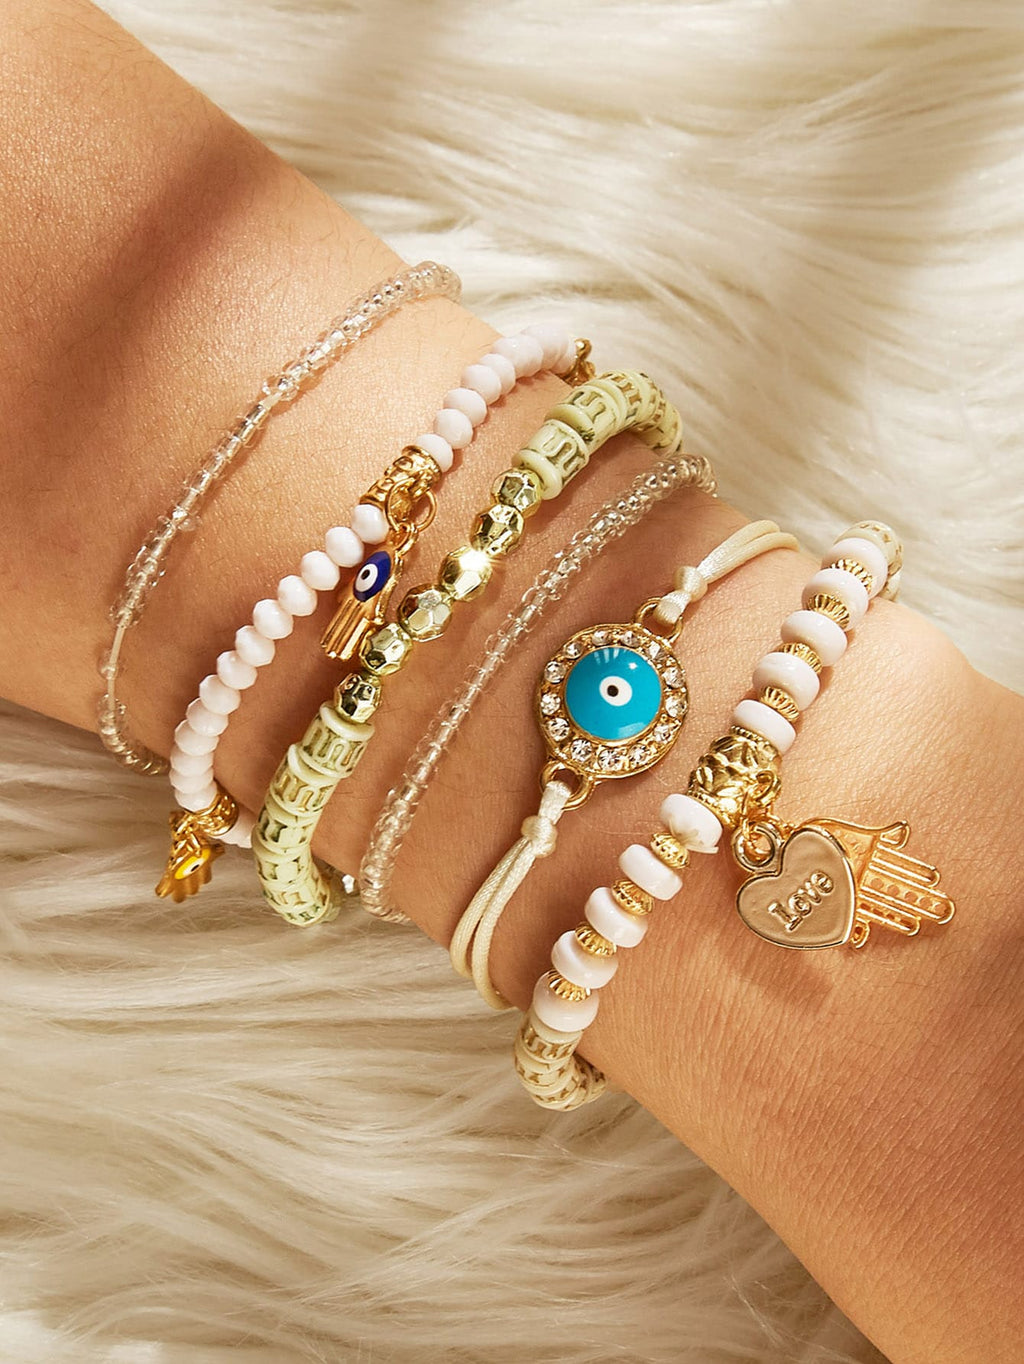 Hand & Heart Charm Beaded Bracelet Set 6pcs-Women - Jewelry - Necklaces-SHEIN-Trendy-JayBoutique